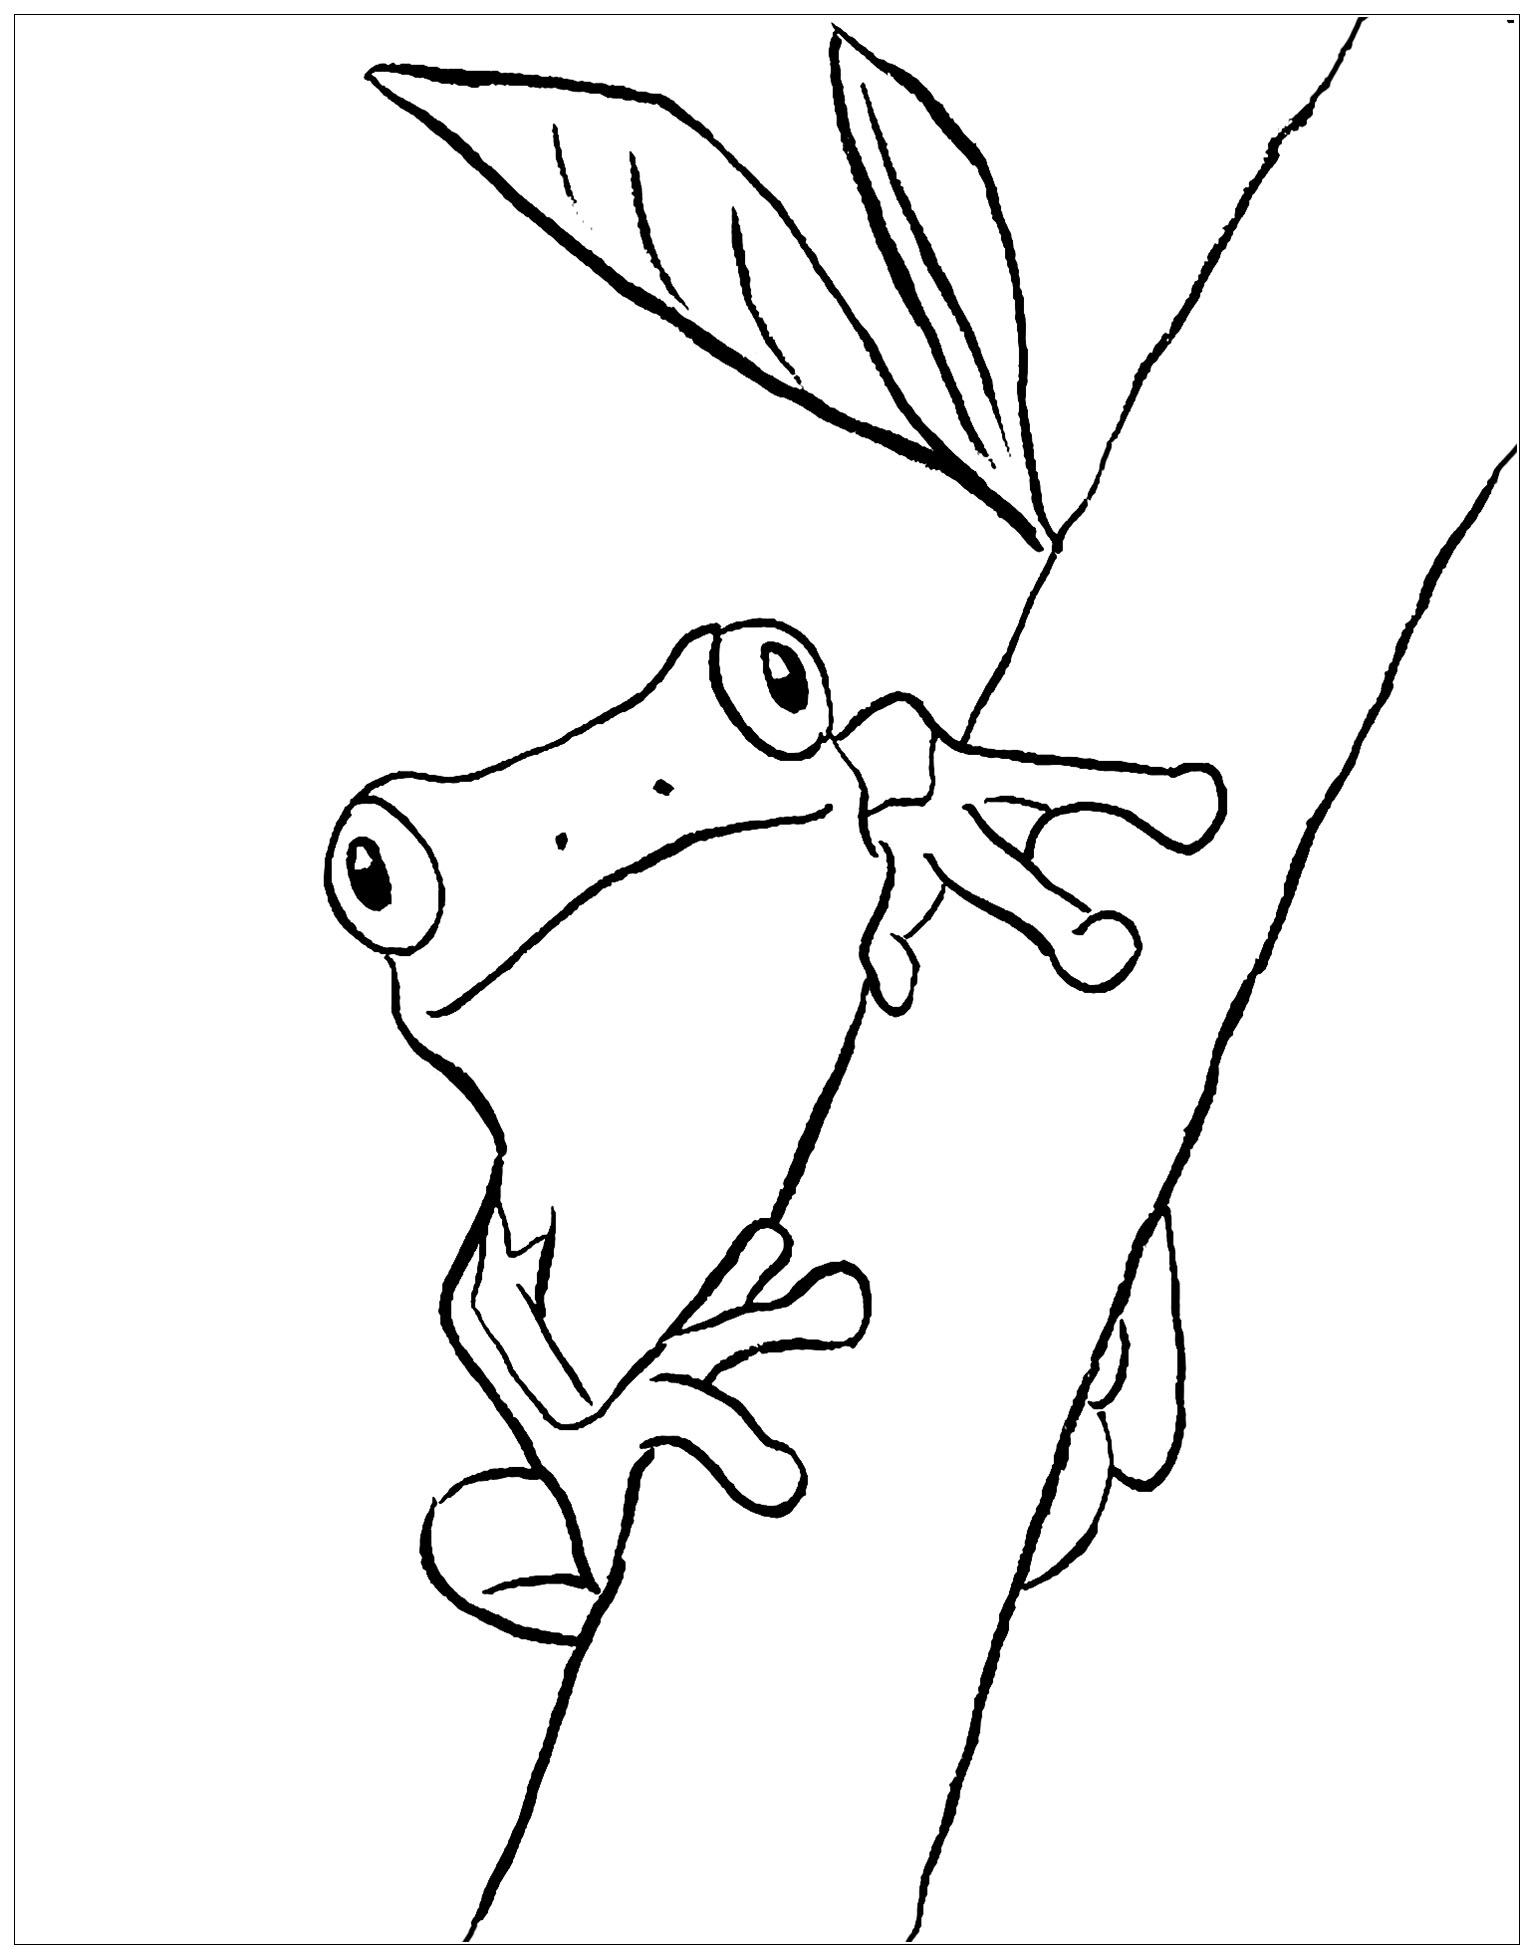 coloring image of a frog frogs for kids frogs kids coloring pages coloring image frog of a